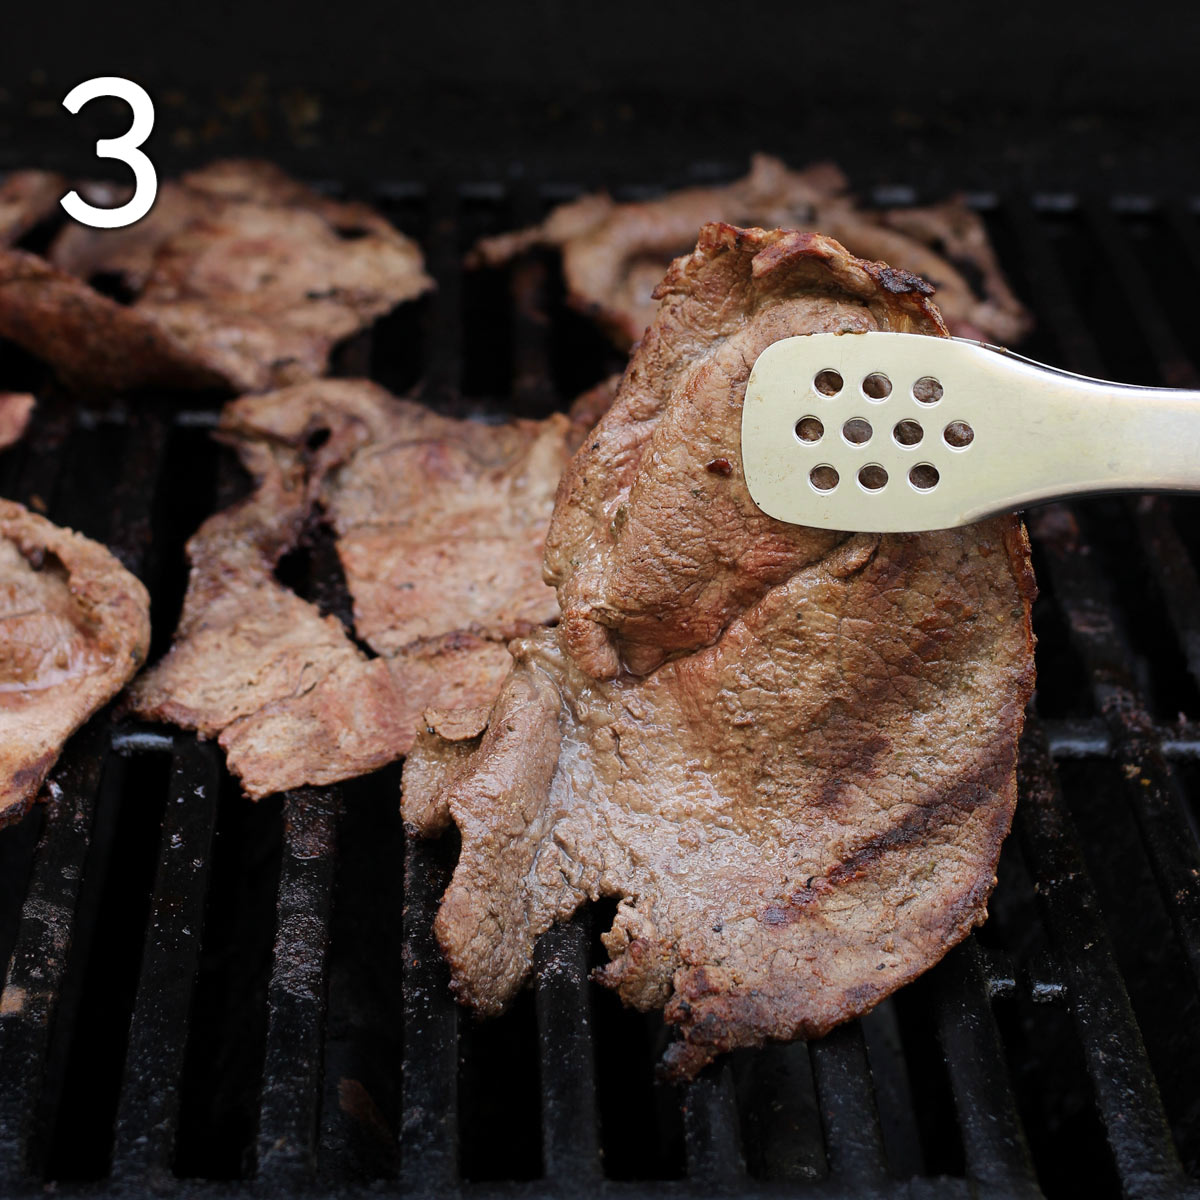 tongs lifting grilled steak from a hot grill.